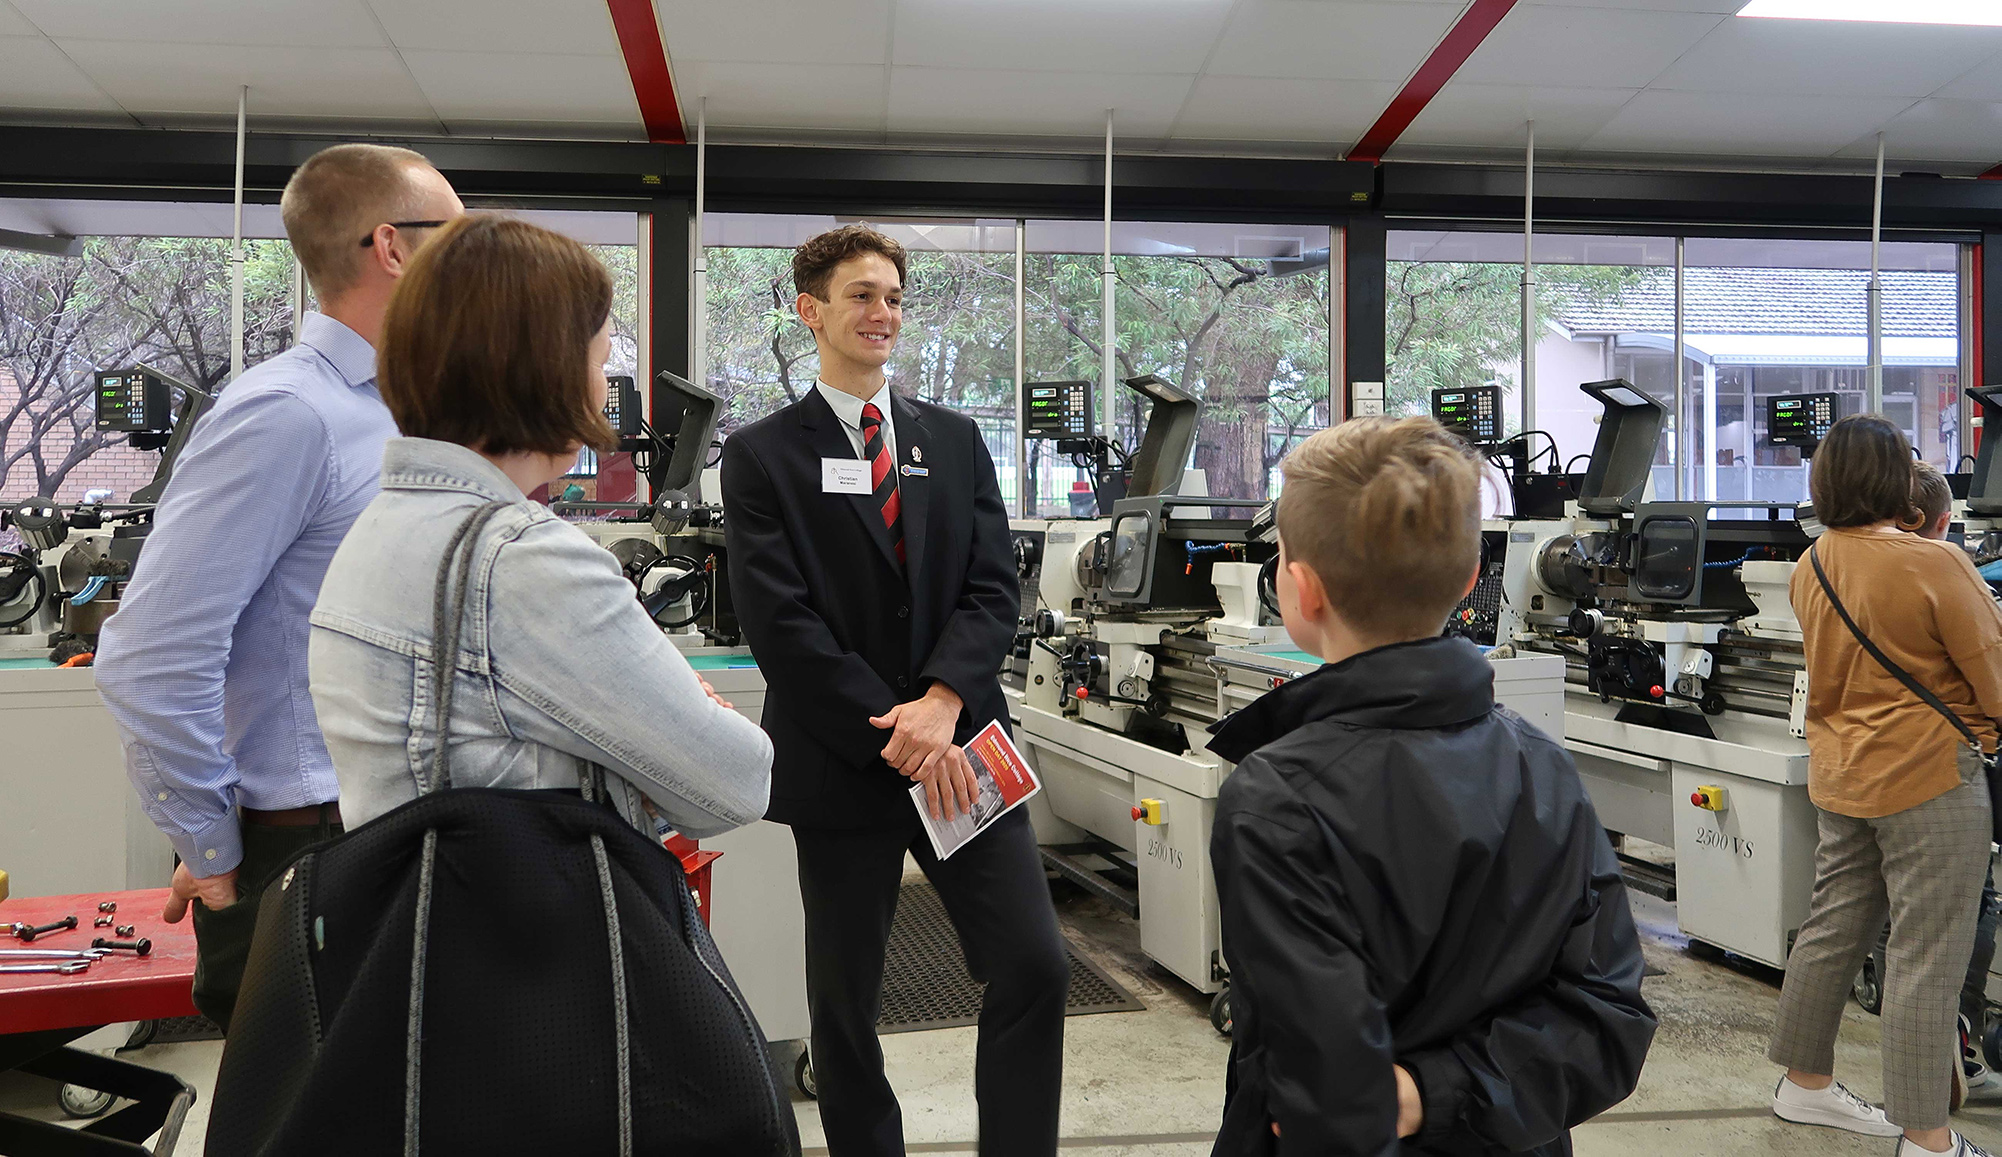 A student leads an open day tour with machinery in the background